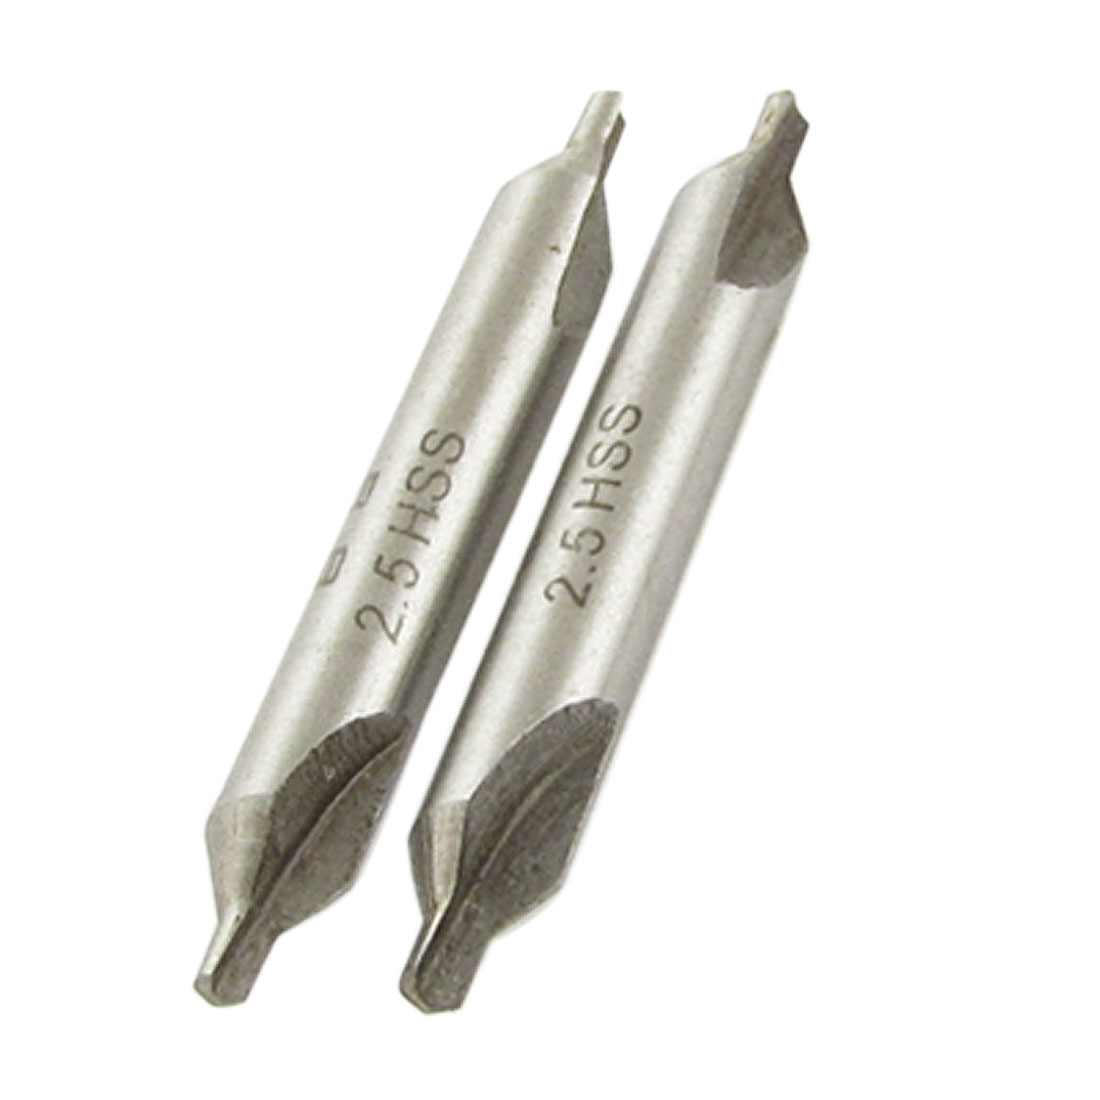 "2 Pcs 0.1"" Diameter Lathe Drilling Hole Tool Center Drill Bits"